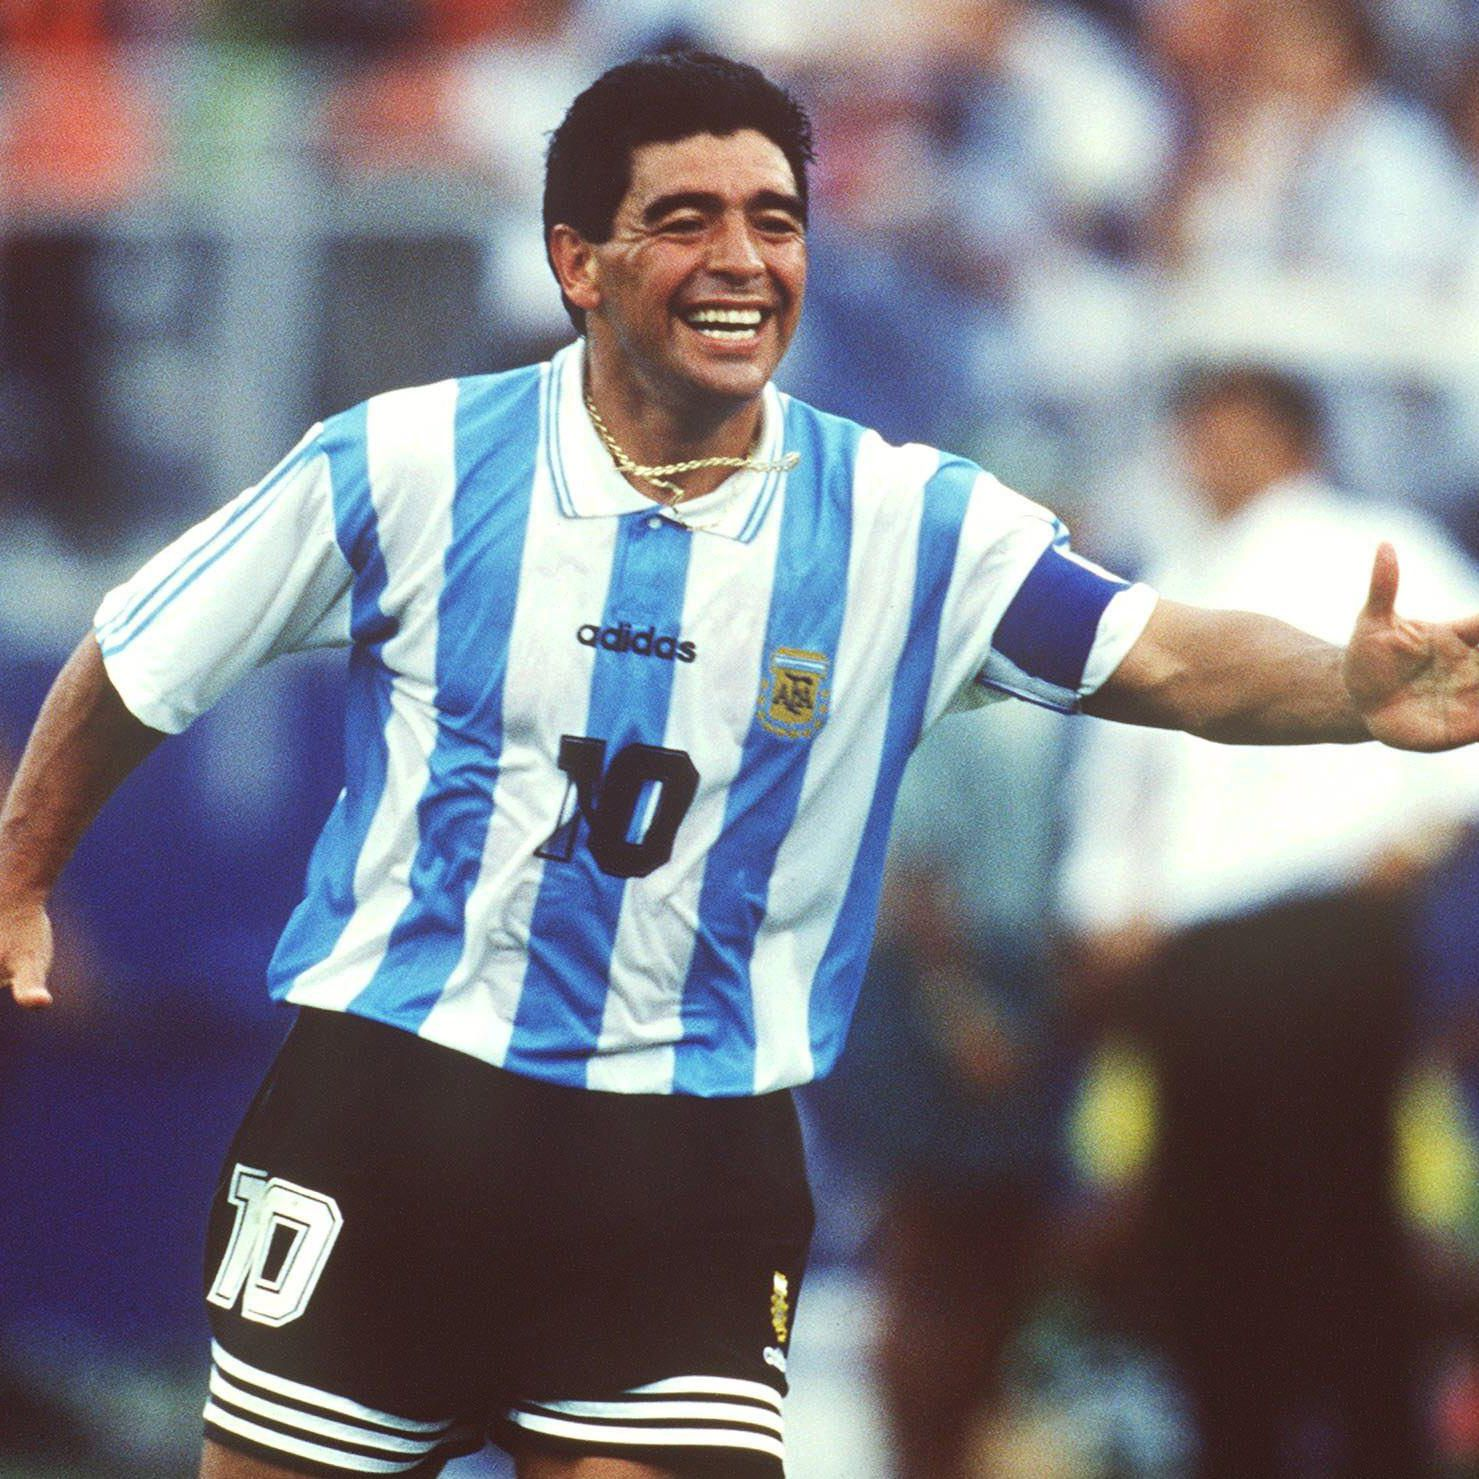 069b1b968 Profile of Soccer Player Diego Maradona